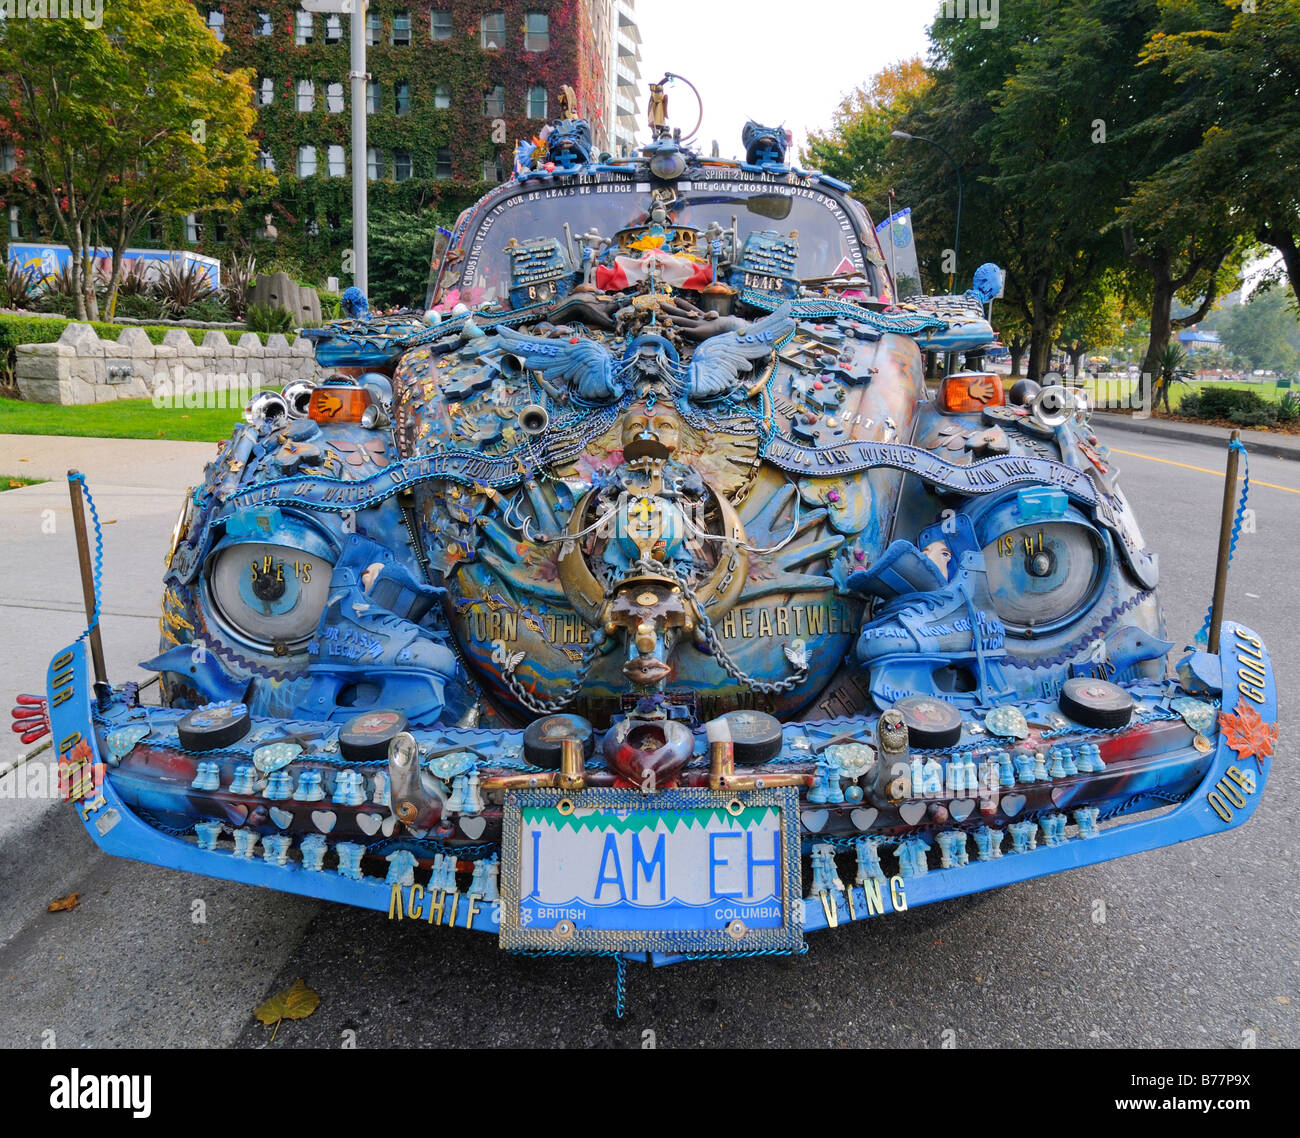 Weird car with complex decorations, Volkswagen Beetle, Vancouver, British Columbia, Canada, North America - Stock Image